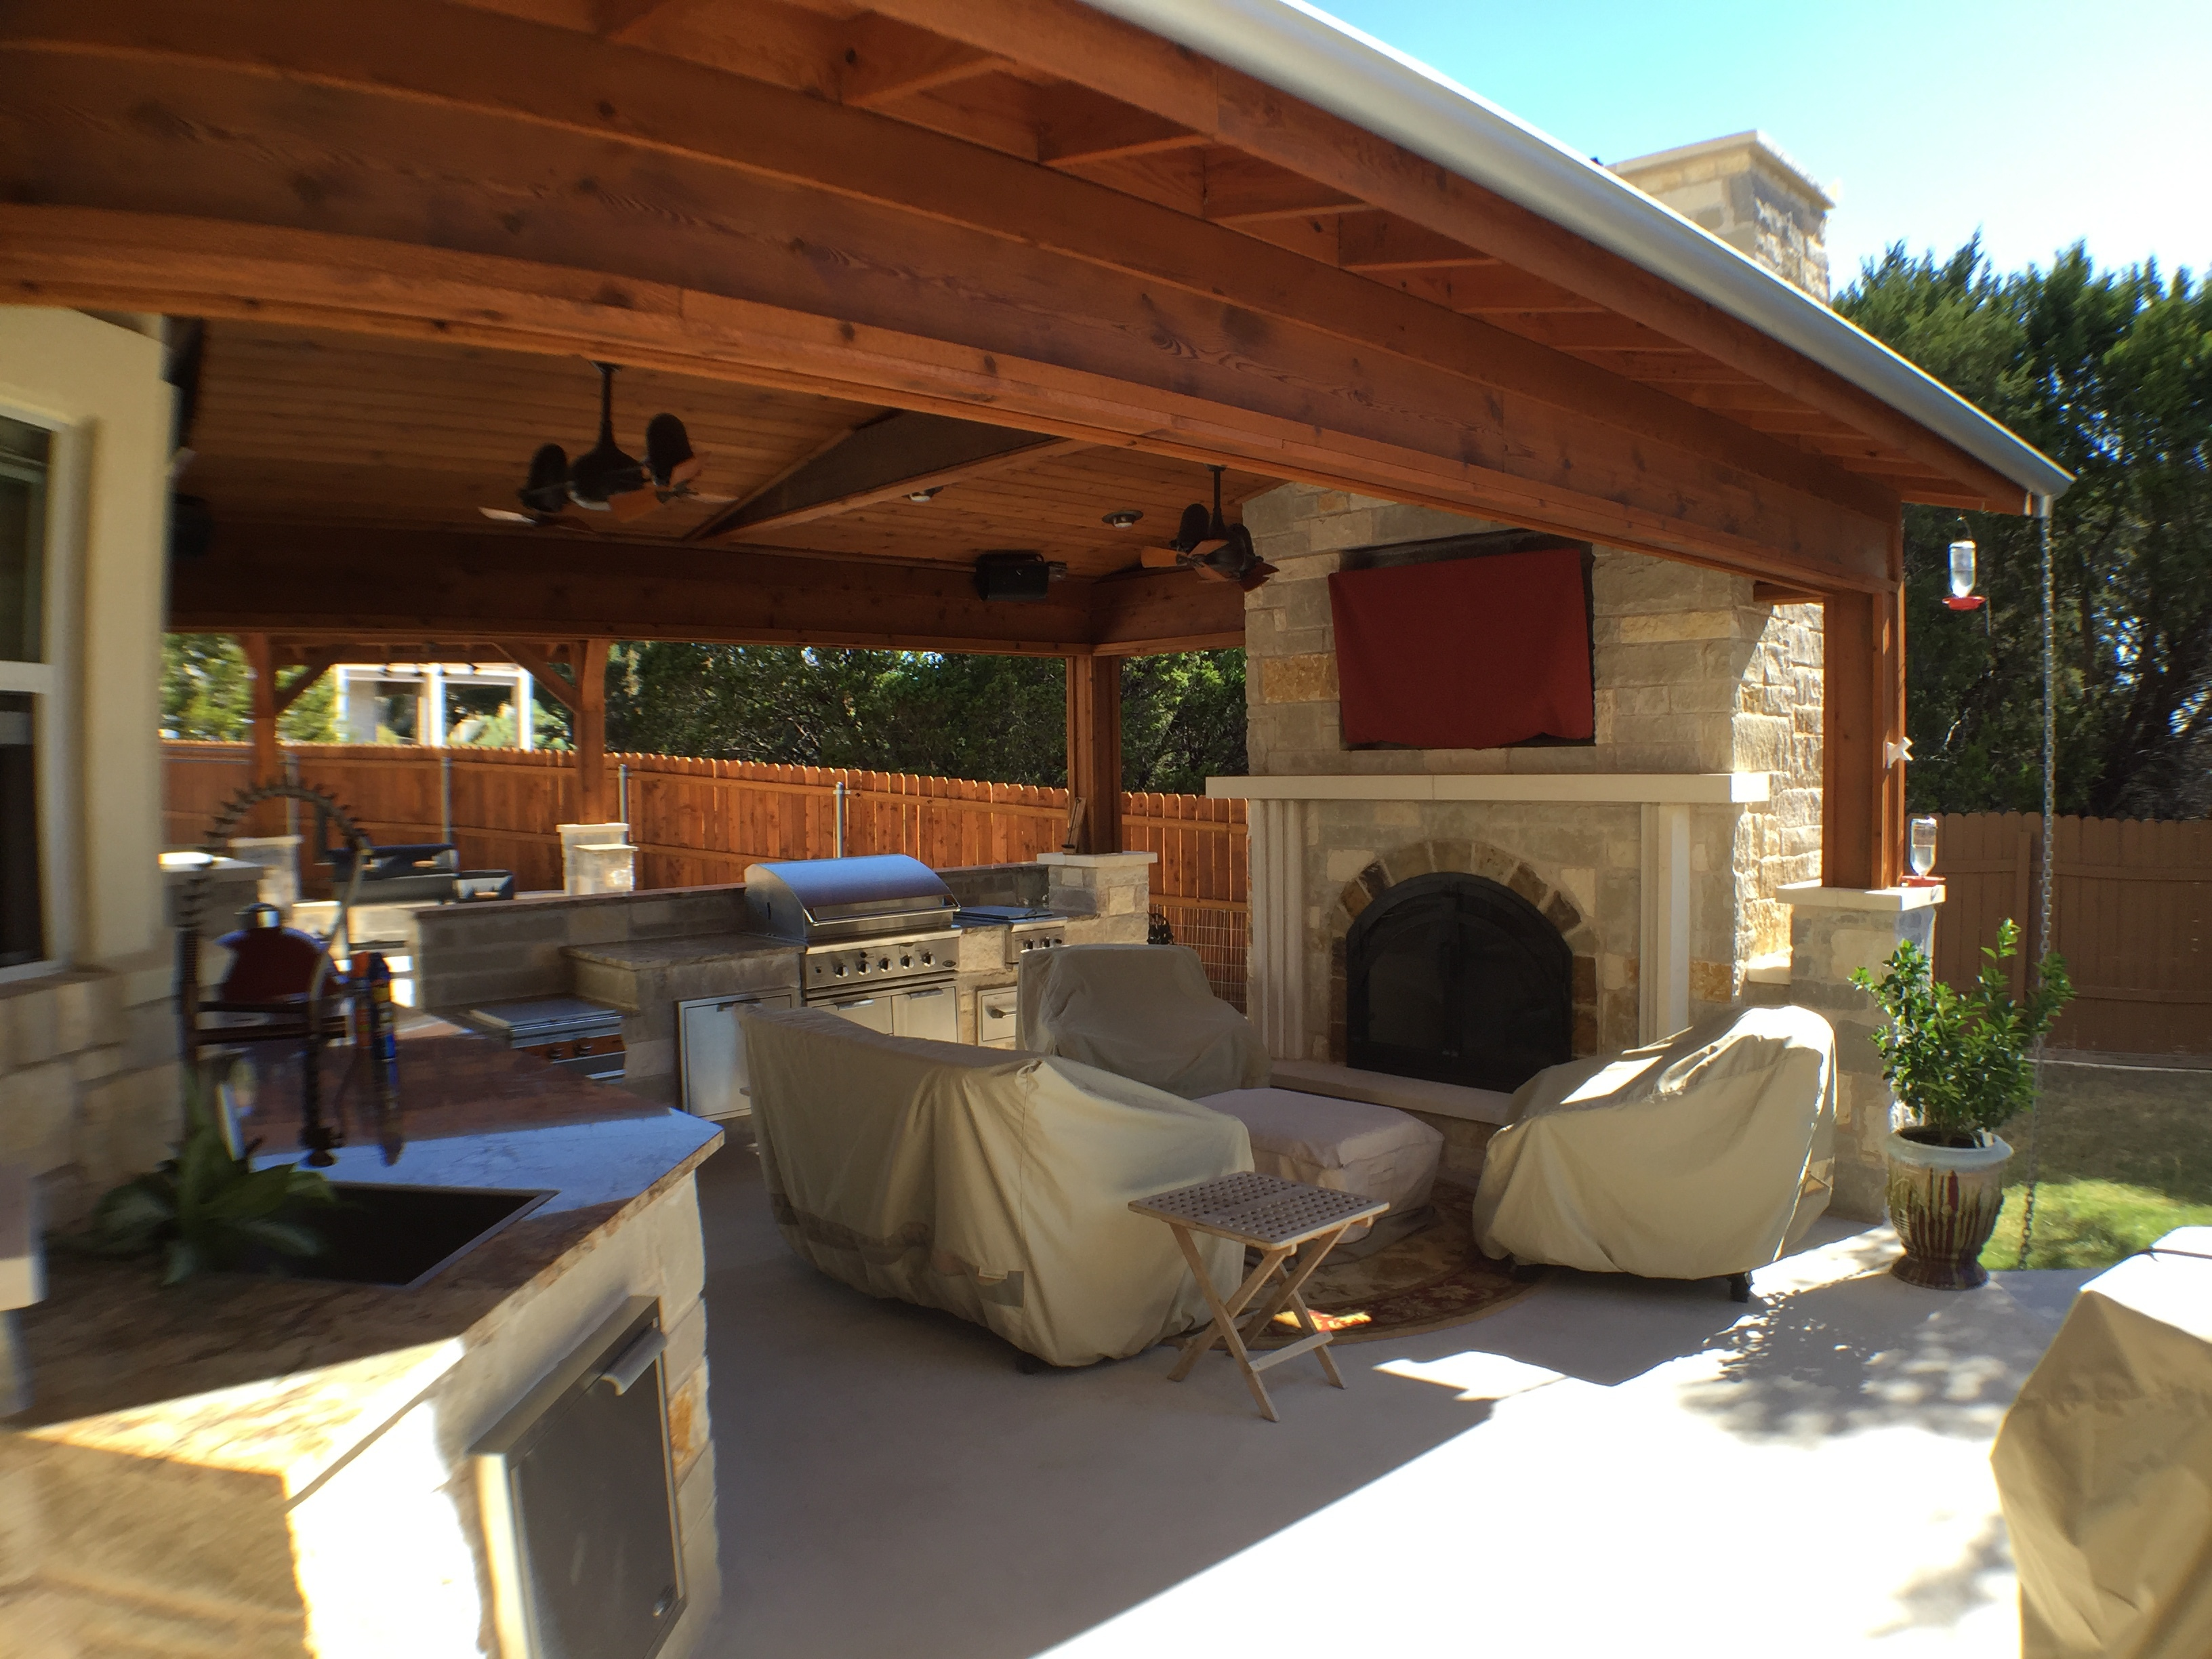 Austin Outdoor Kitchens Limestone Austin Decks Pergolas Covered Patios Porches More